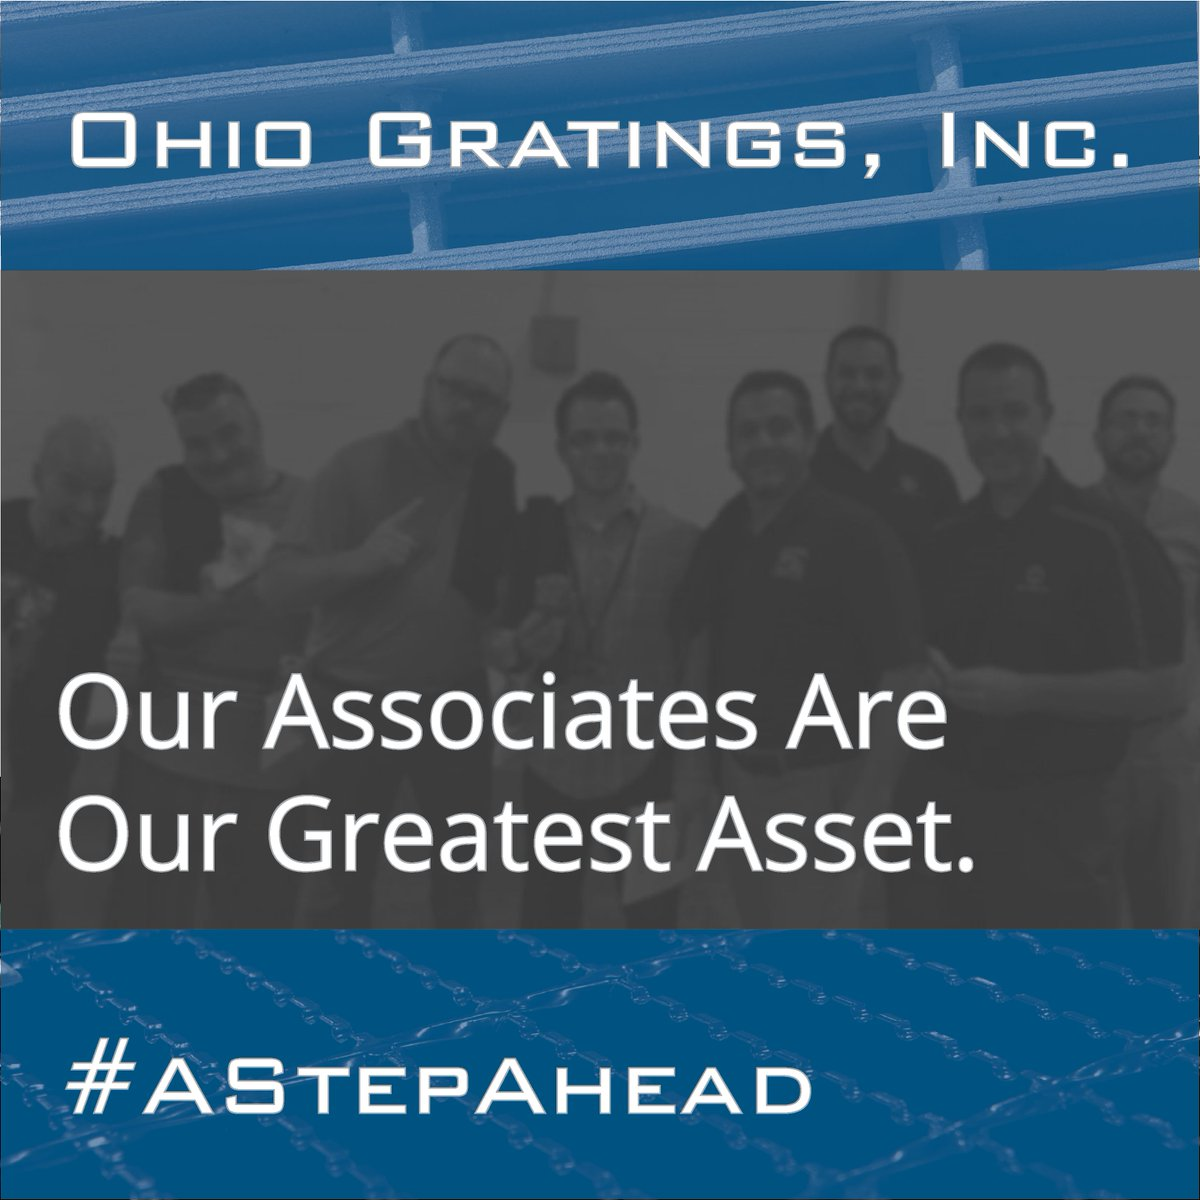 "It's National Employee Appreciation Day! We cherish every one of our associates working with passion every day to ""Make It Right & Ship When Promised."" Thanks for all that you do! #EmployeeAppreciationDay #AStepAhead #ThankYou"